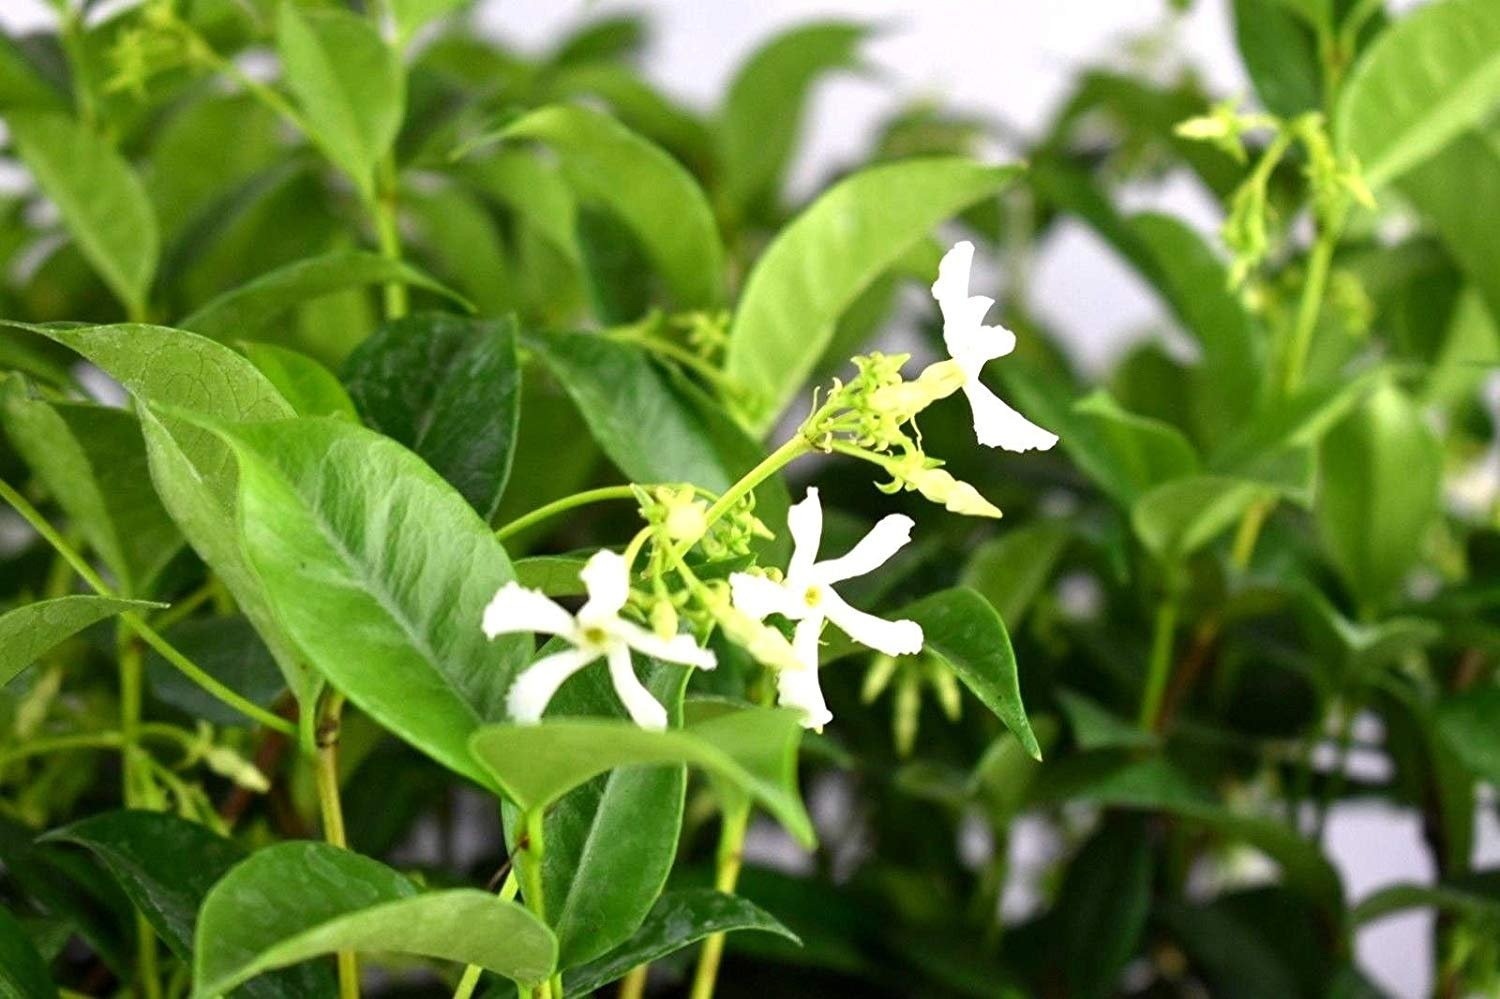 Star Jasmine Live Rooted Plant White Flower 6 inch Tall Easy to Grow (3)